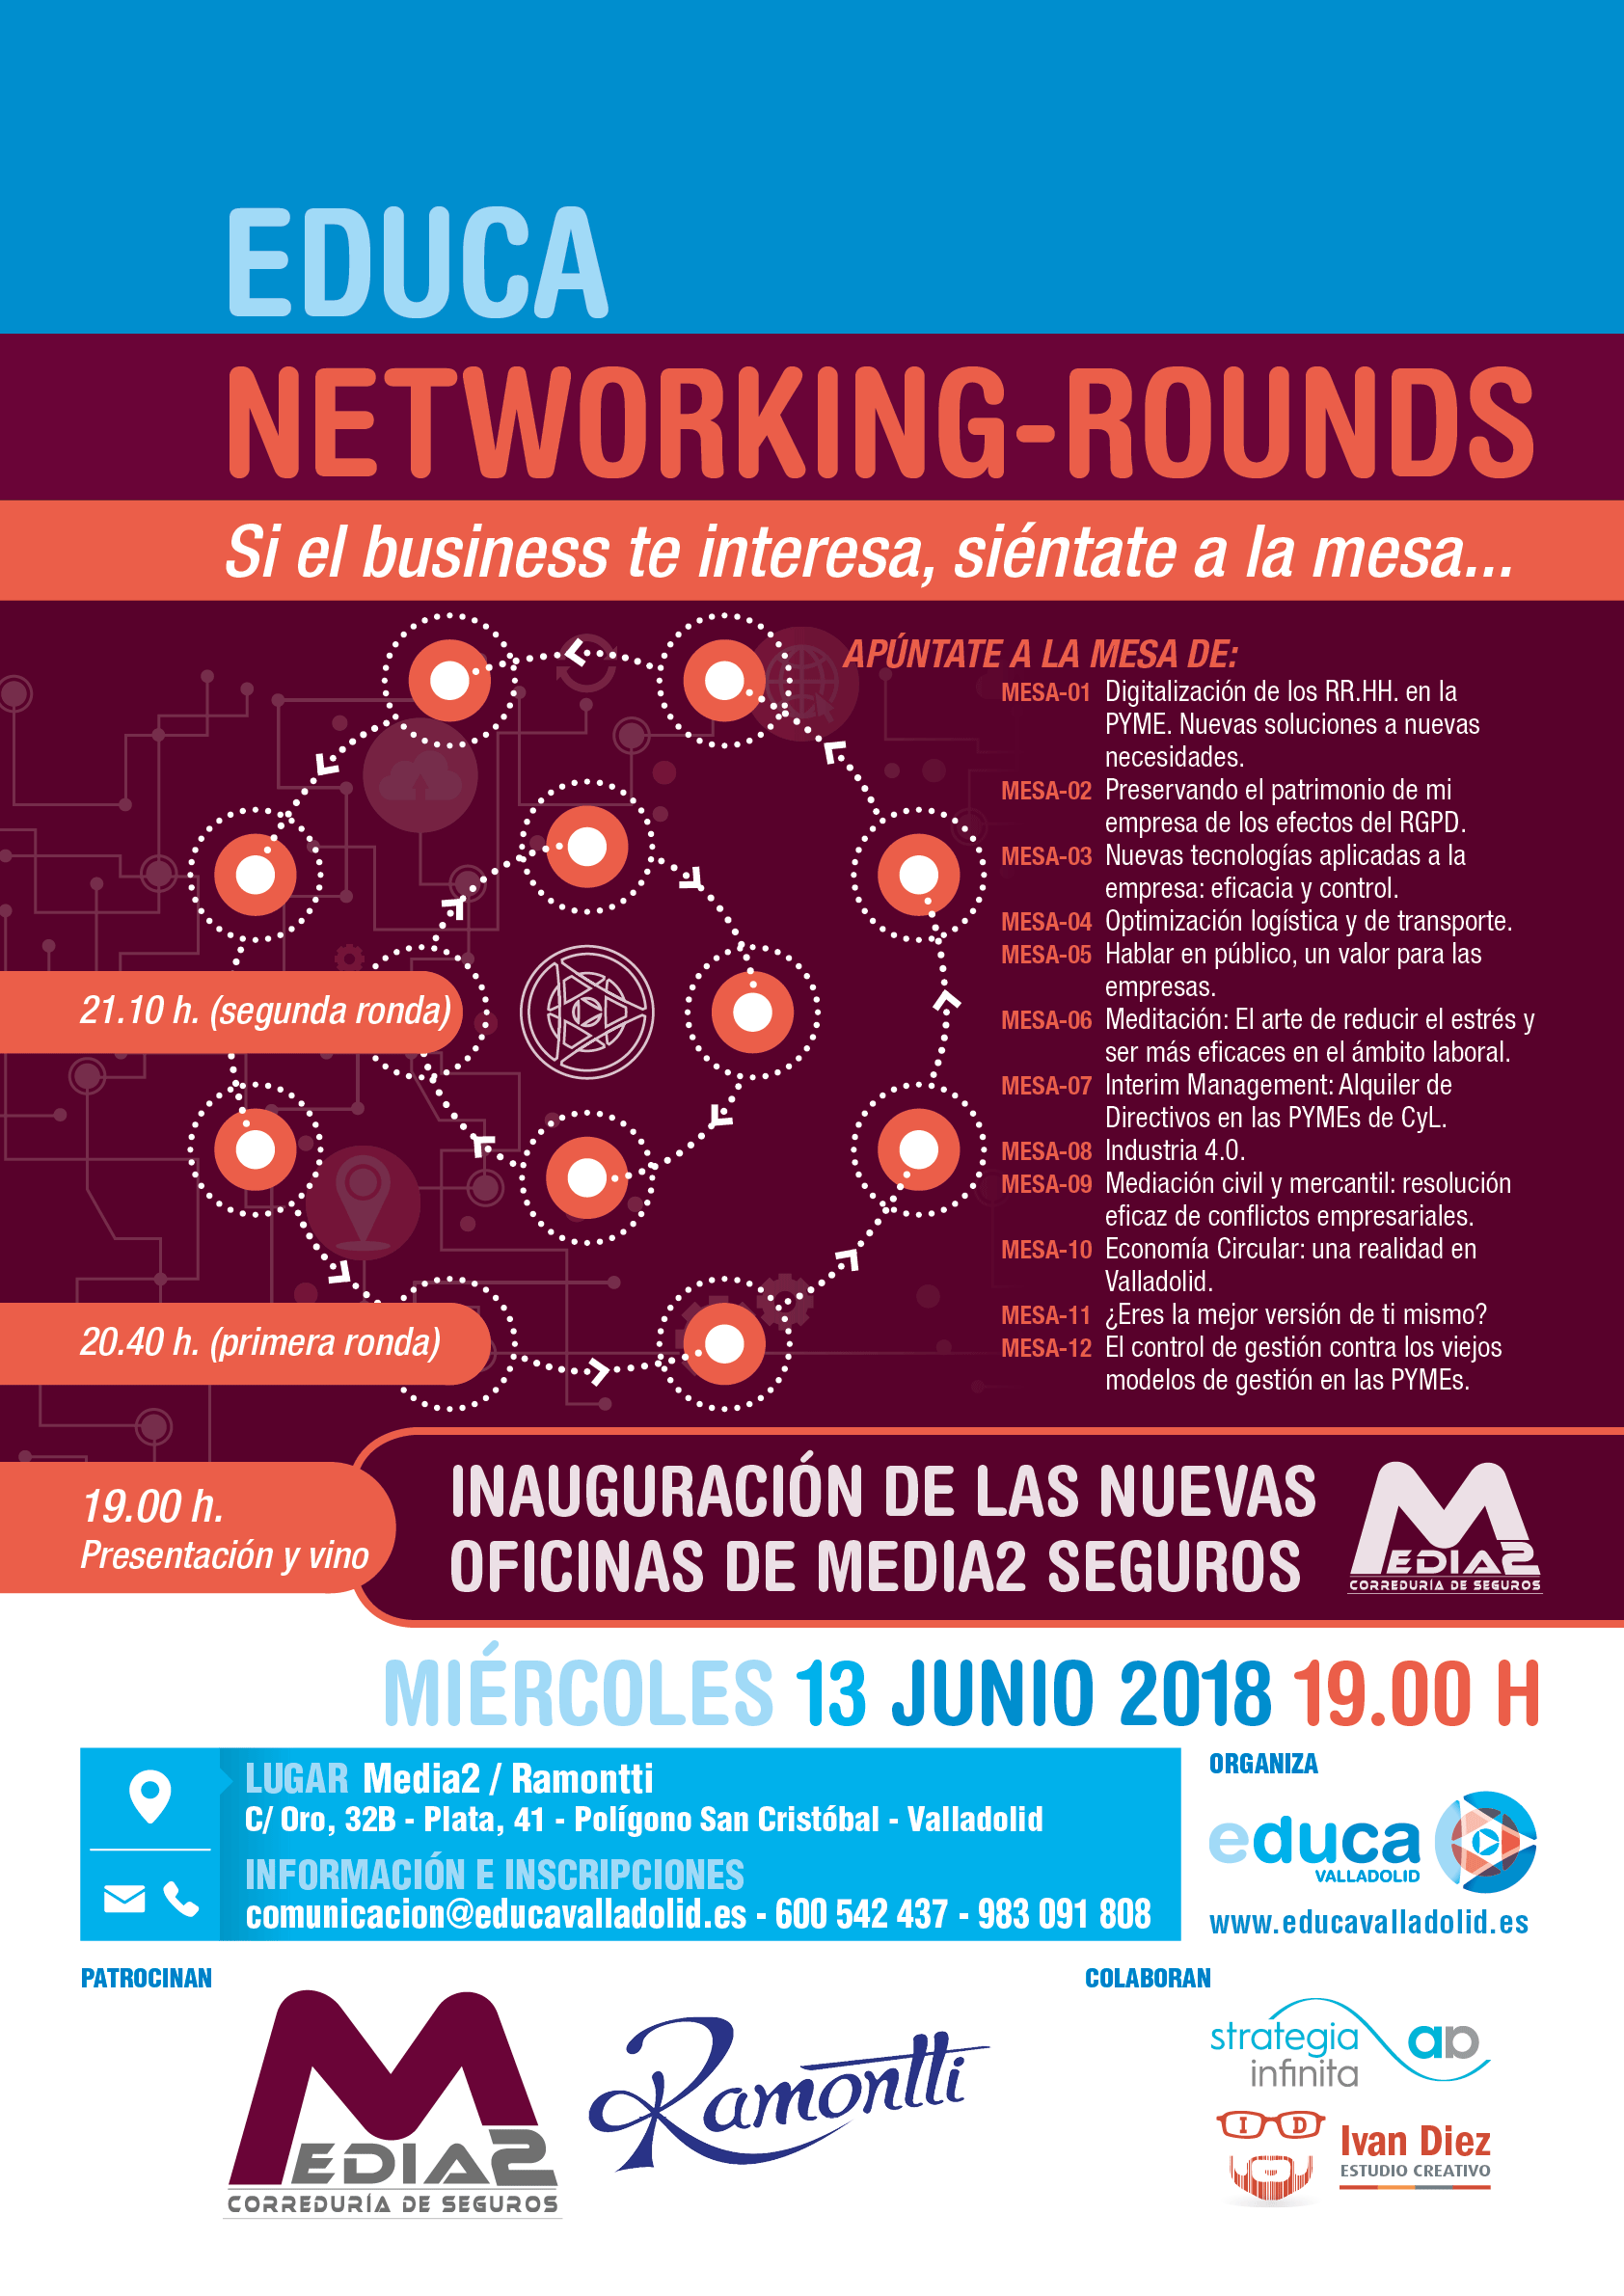 NETWORKING-ROUNDS